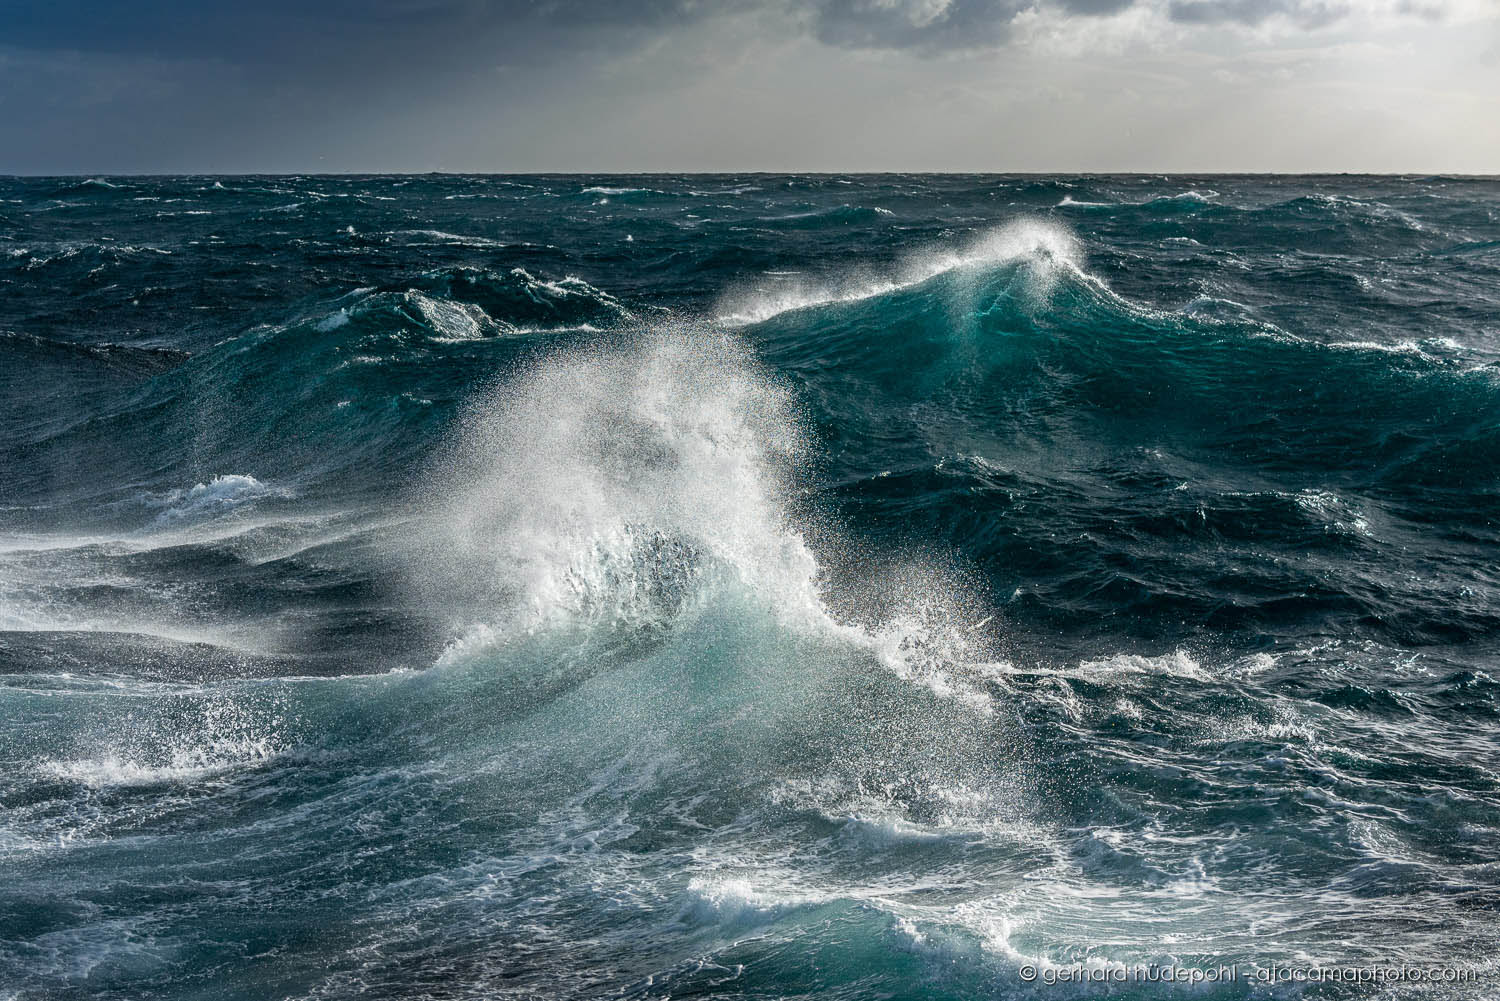 Beautiful waves captured during rough sea days in the Antarctic ocean